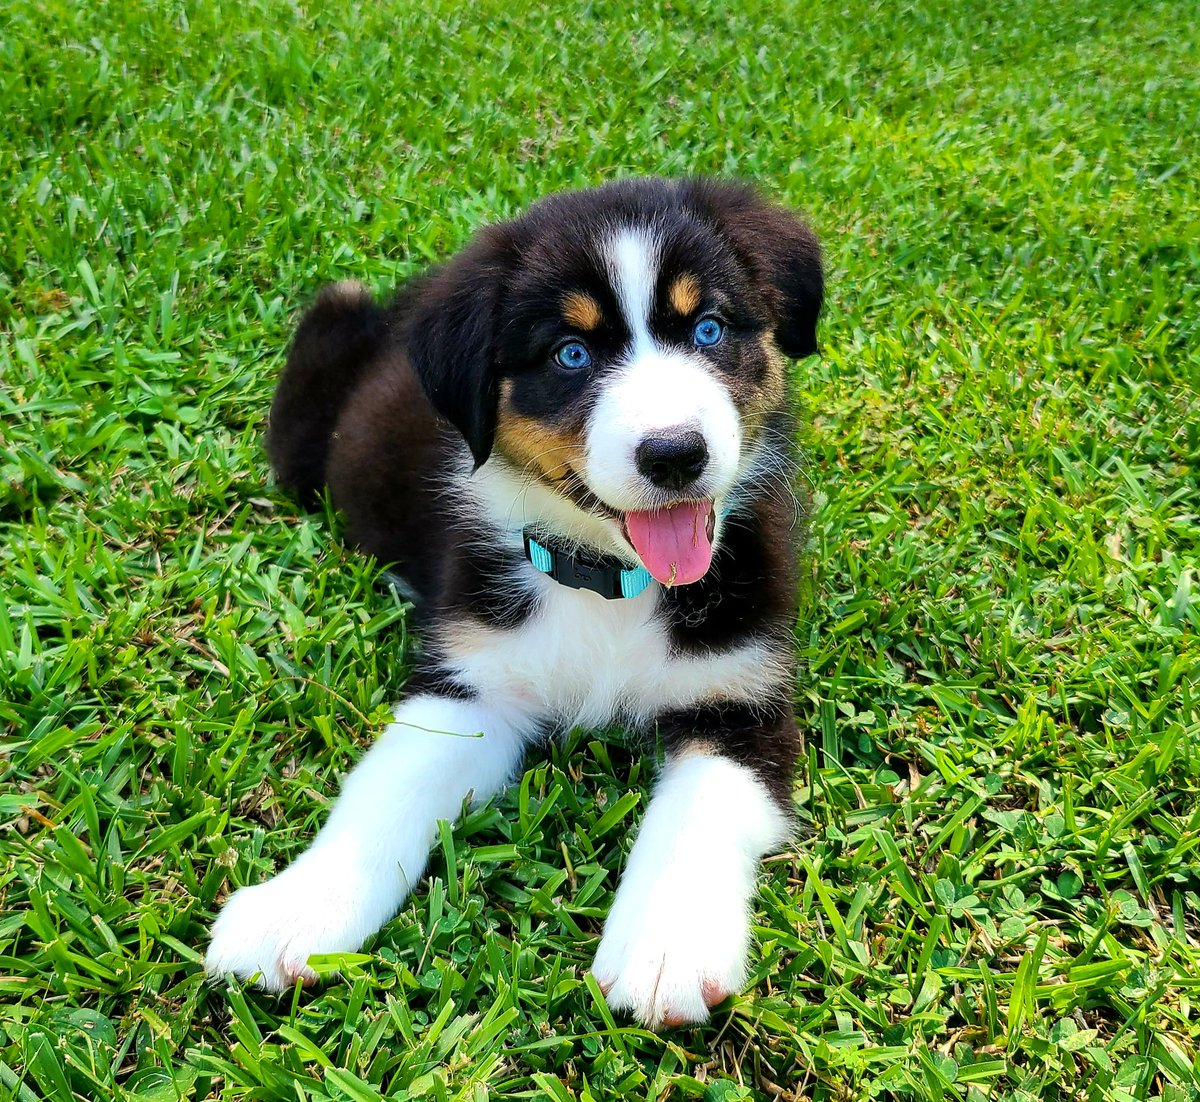 Our new girl Luna #australianshepherd #aussie pic.twitter.com/I0MkFbKIlq